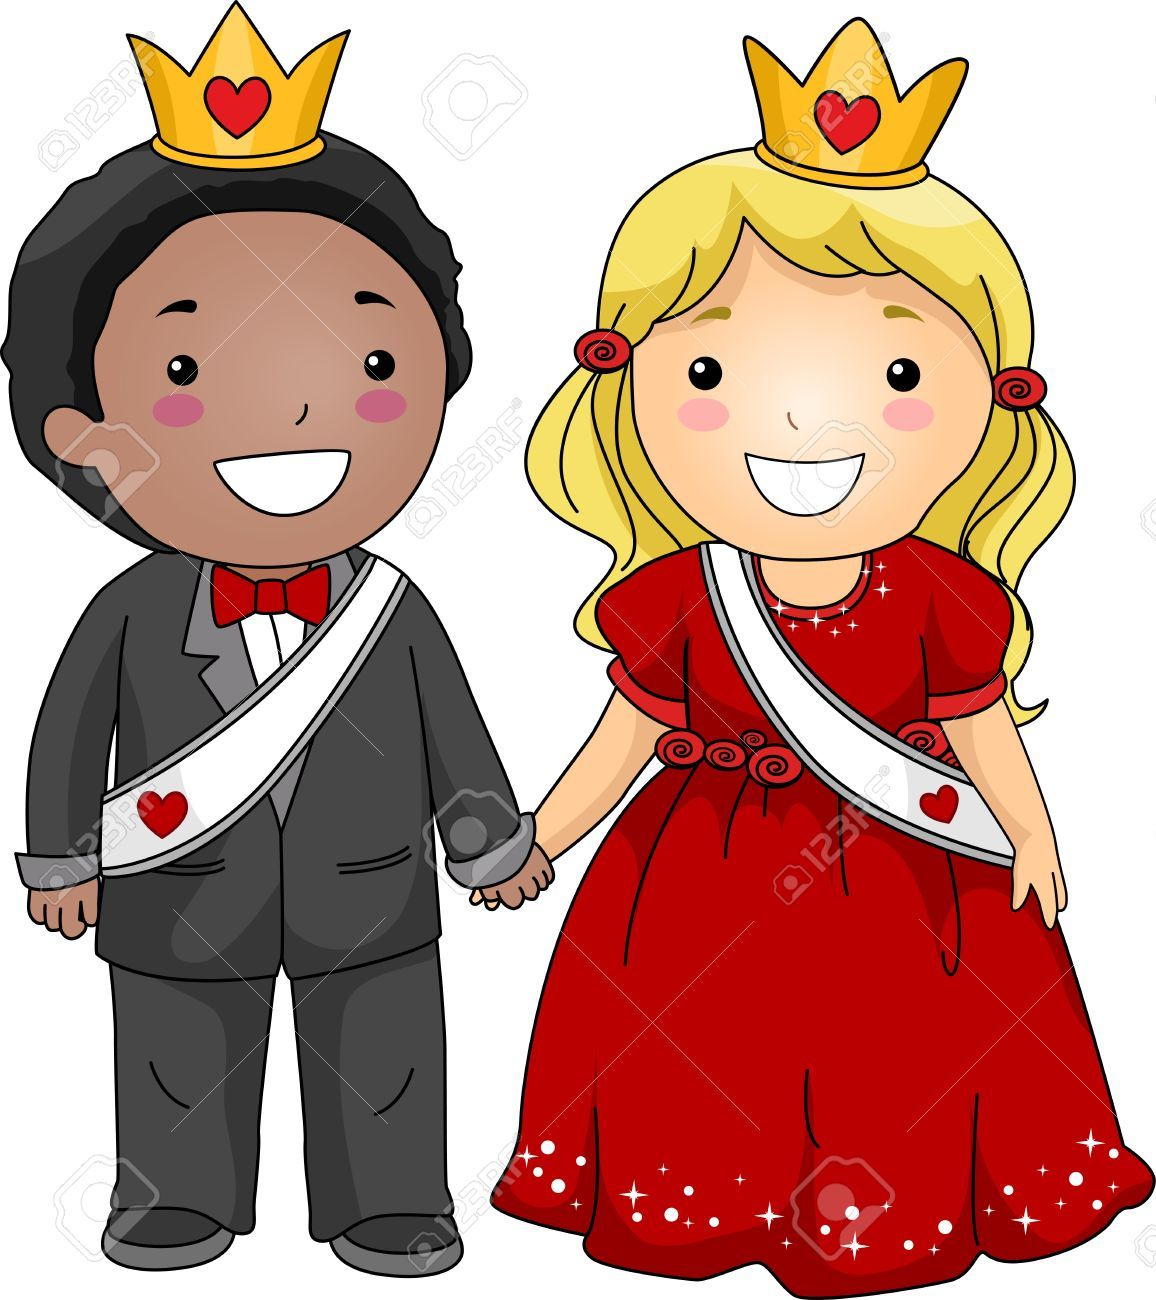 A king and queen clipart picture black and white King queen clipart 1 » Clipart Portal picture black and white